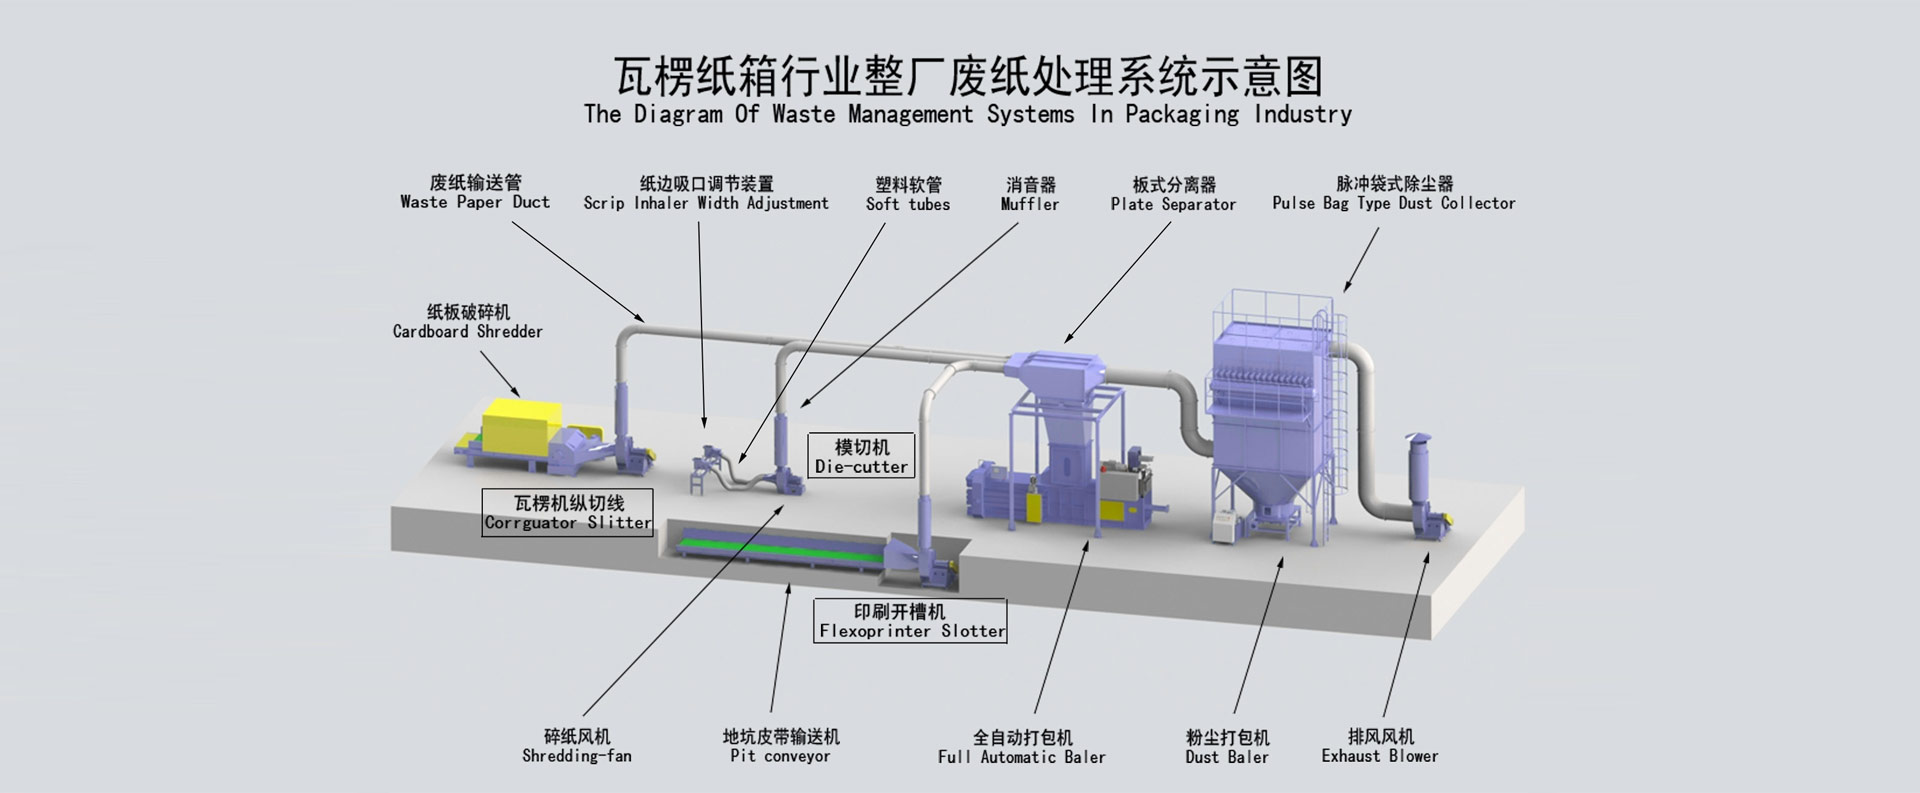 waste management systems in packaging industry